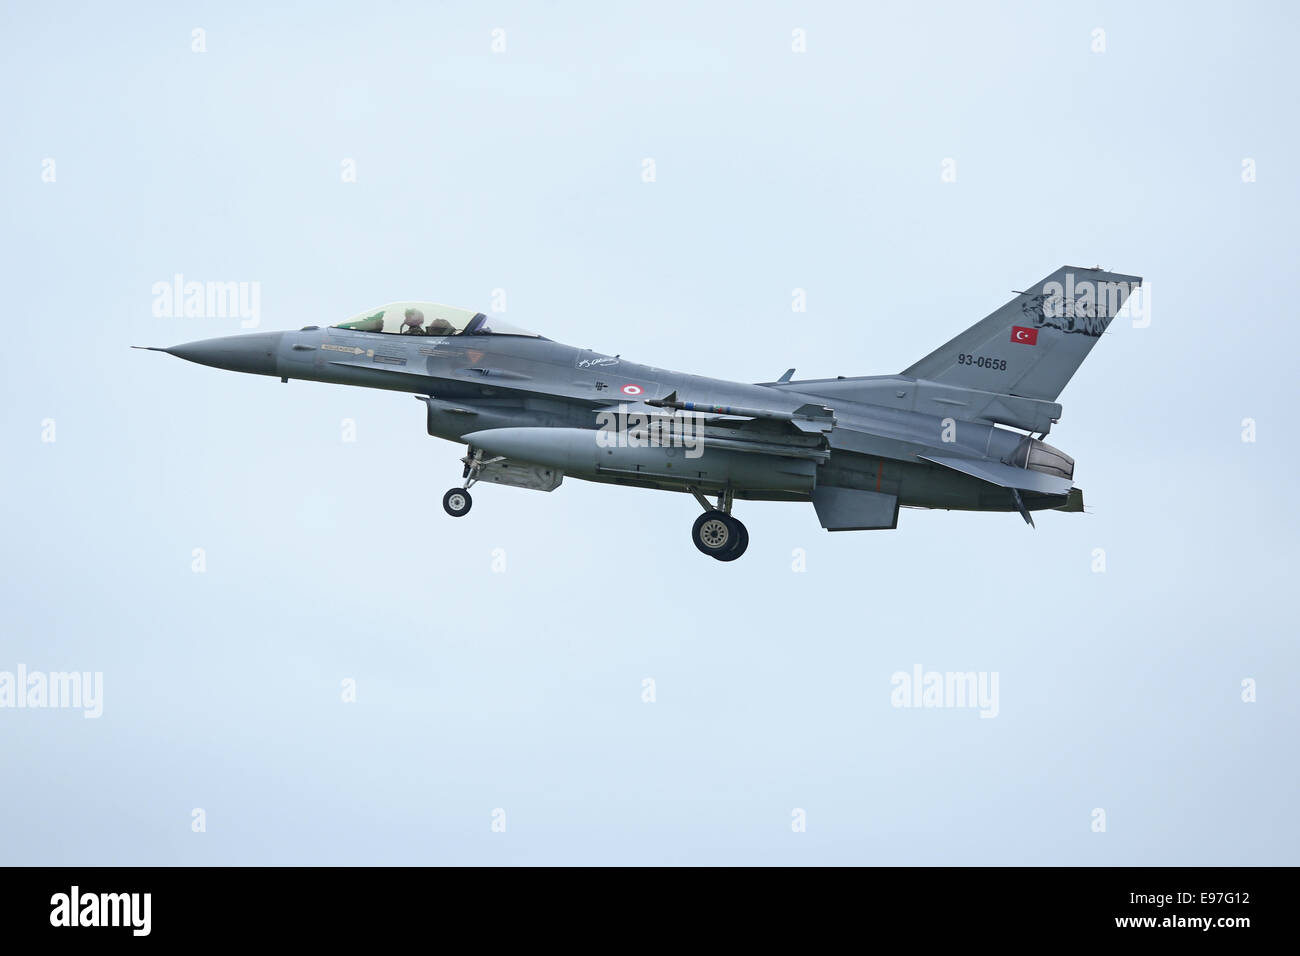 Turkish Air Force F-16C comes into land at Schleswig/Jagel, Germany during Tiger Meet 2014 - Stock Image